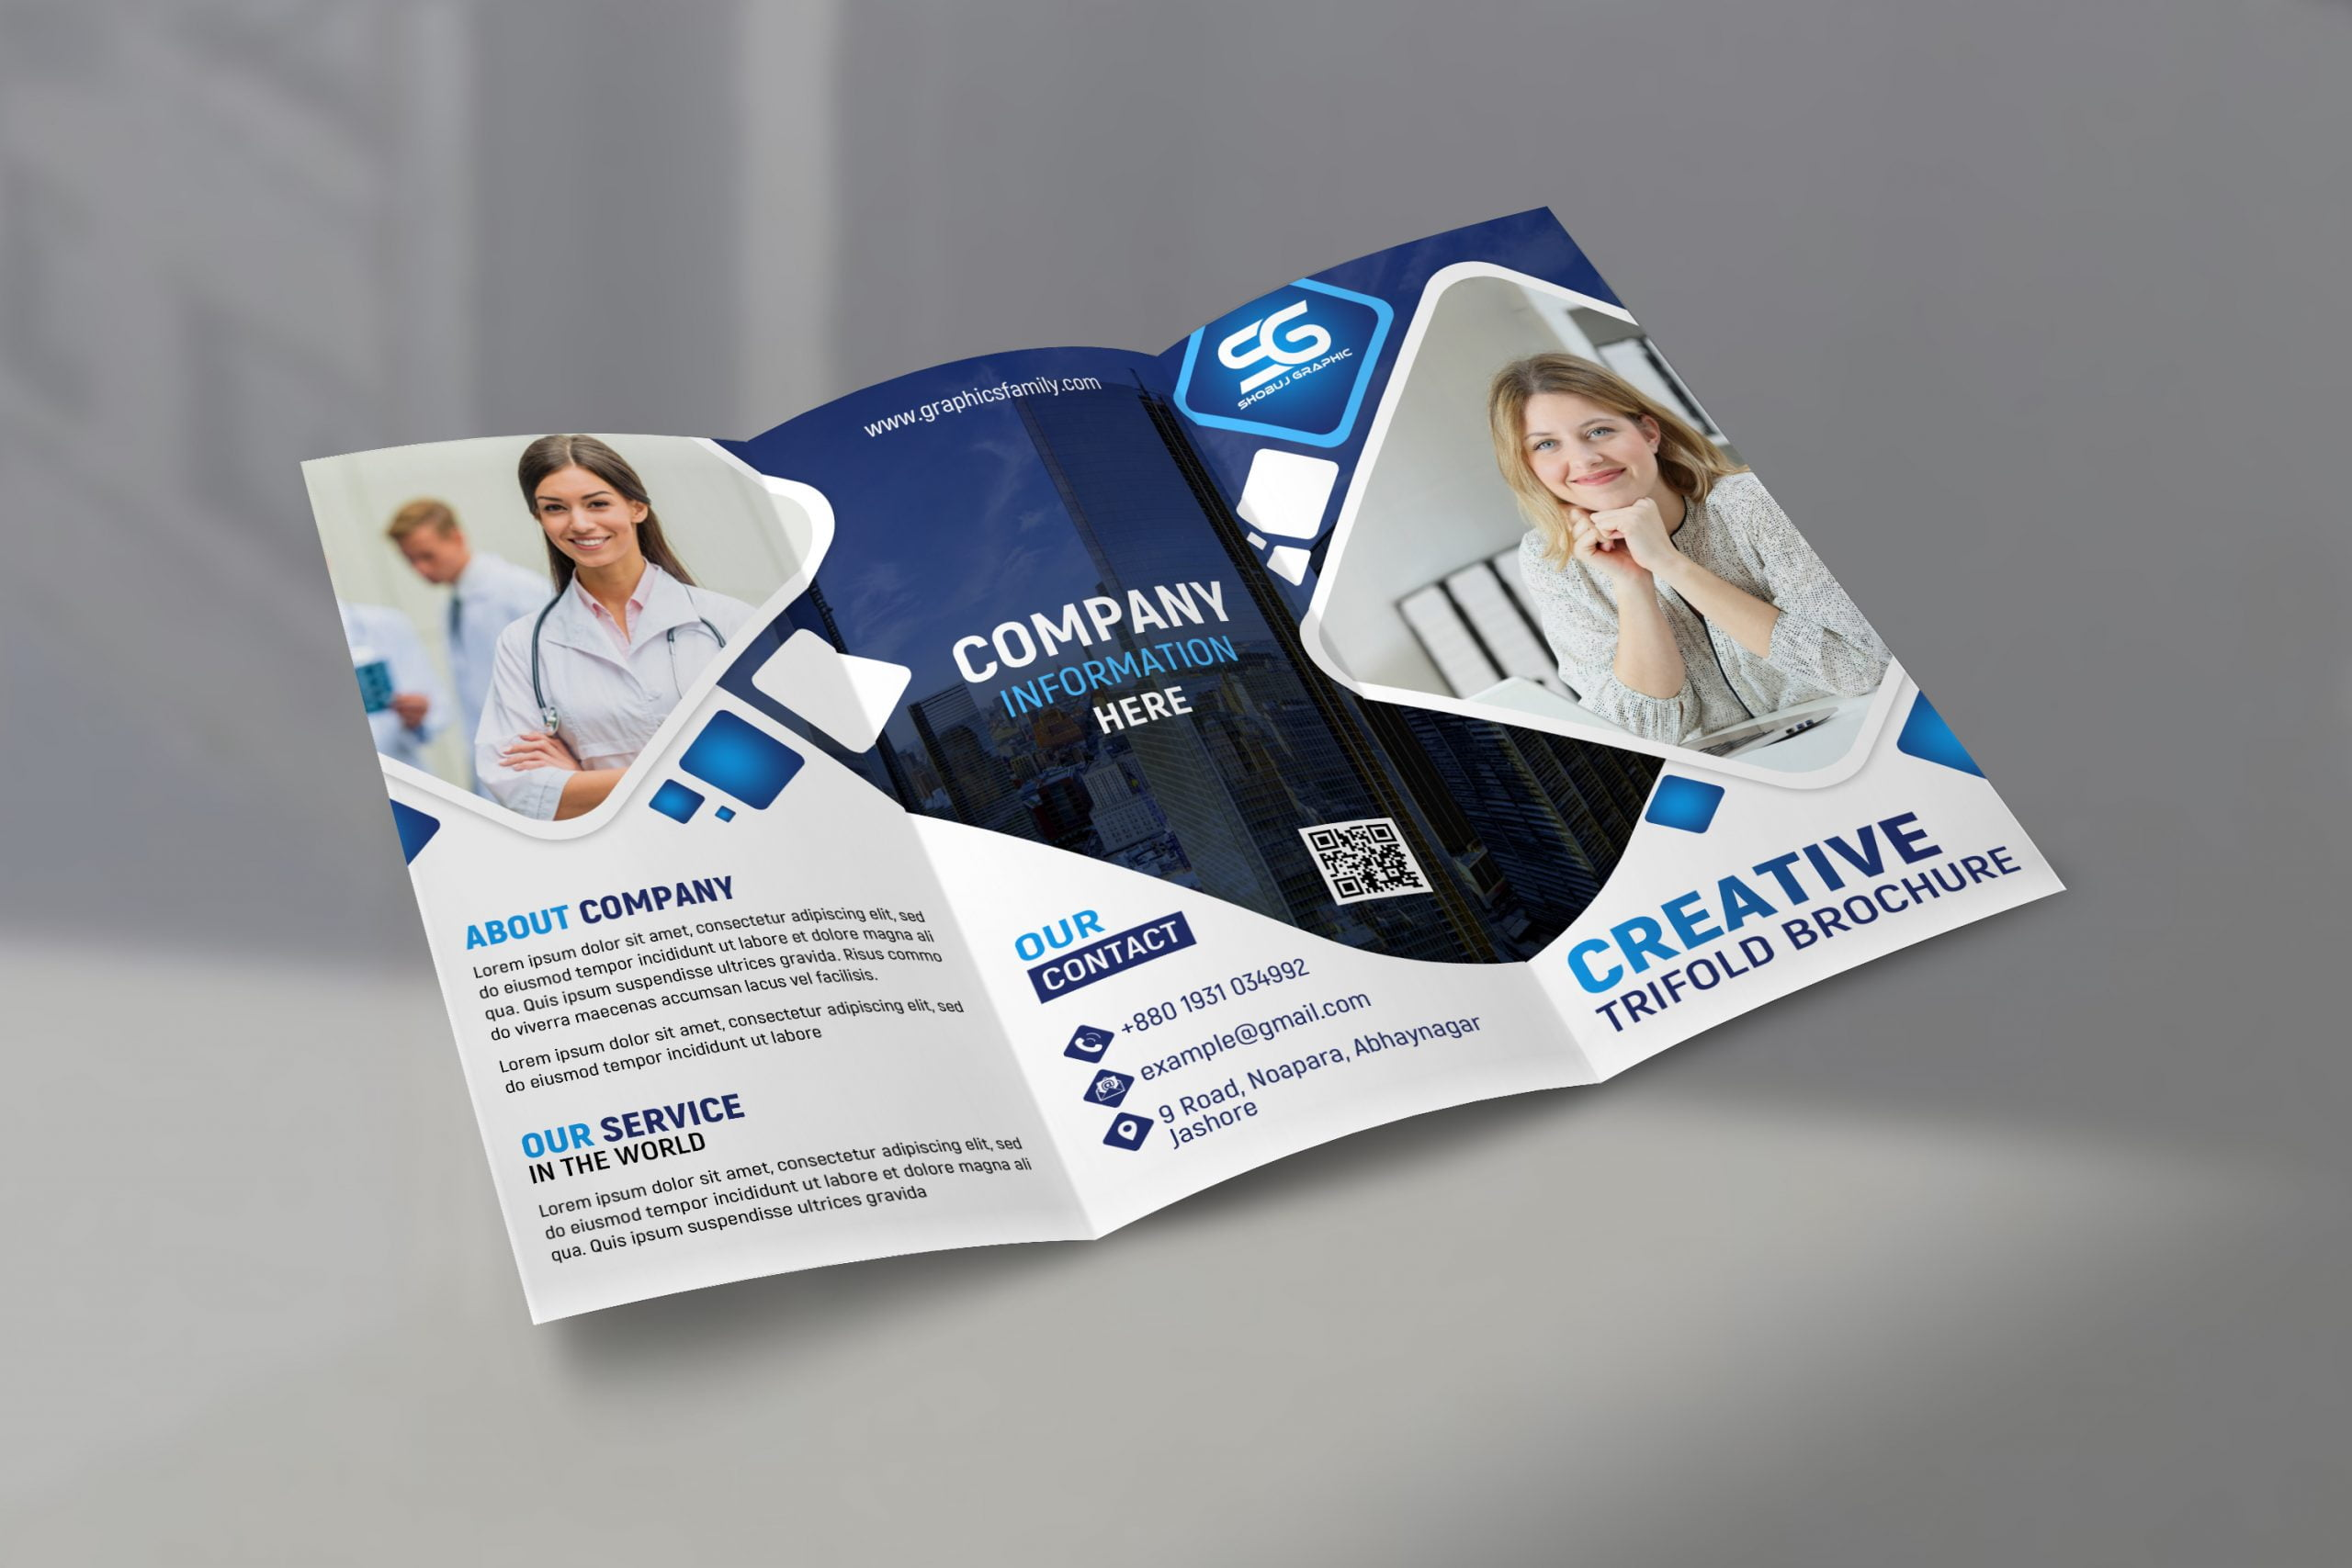 Free Company Promotion Trifold Brochure Design Template by GraphicsFamily